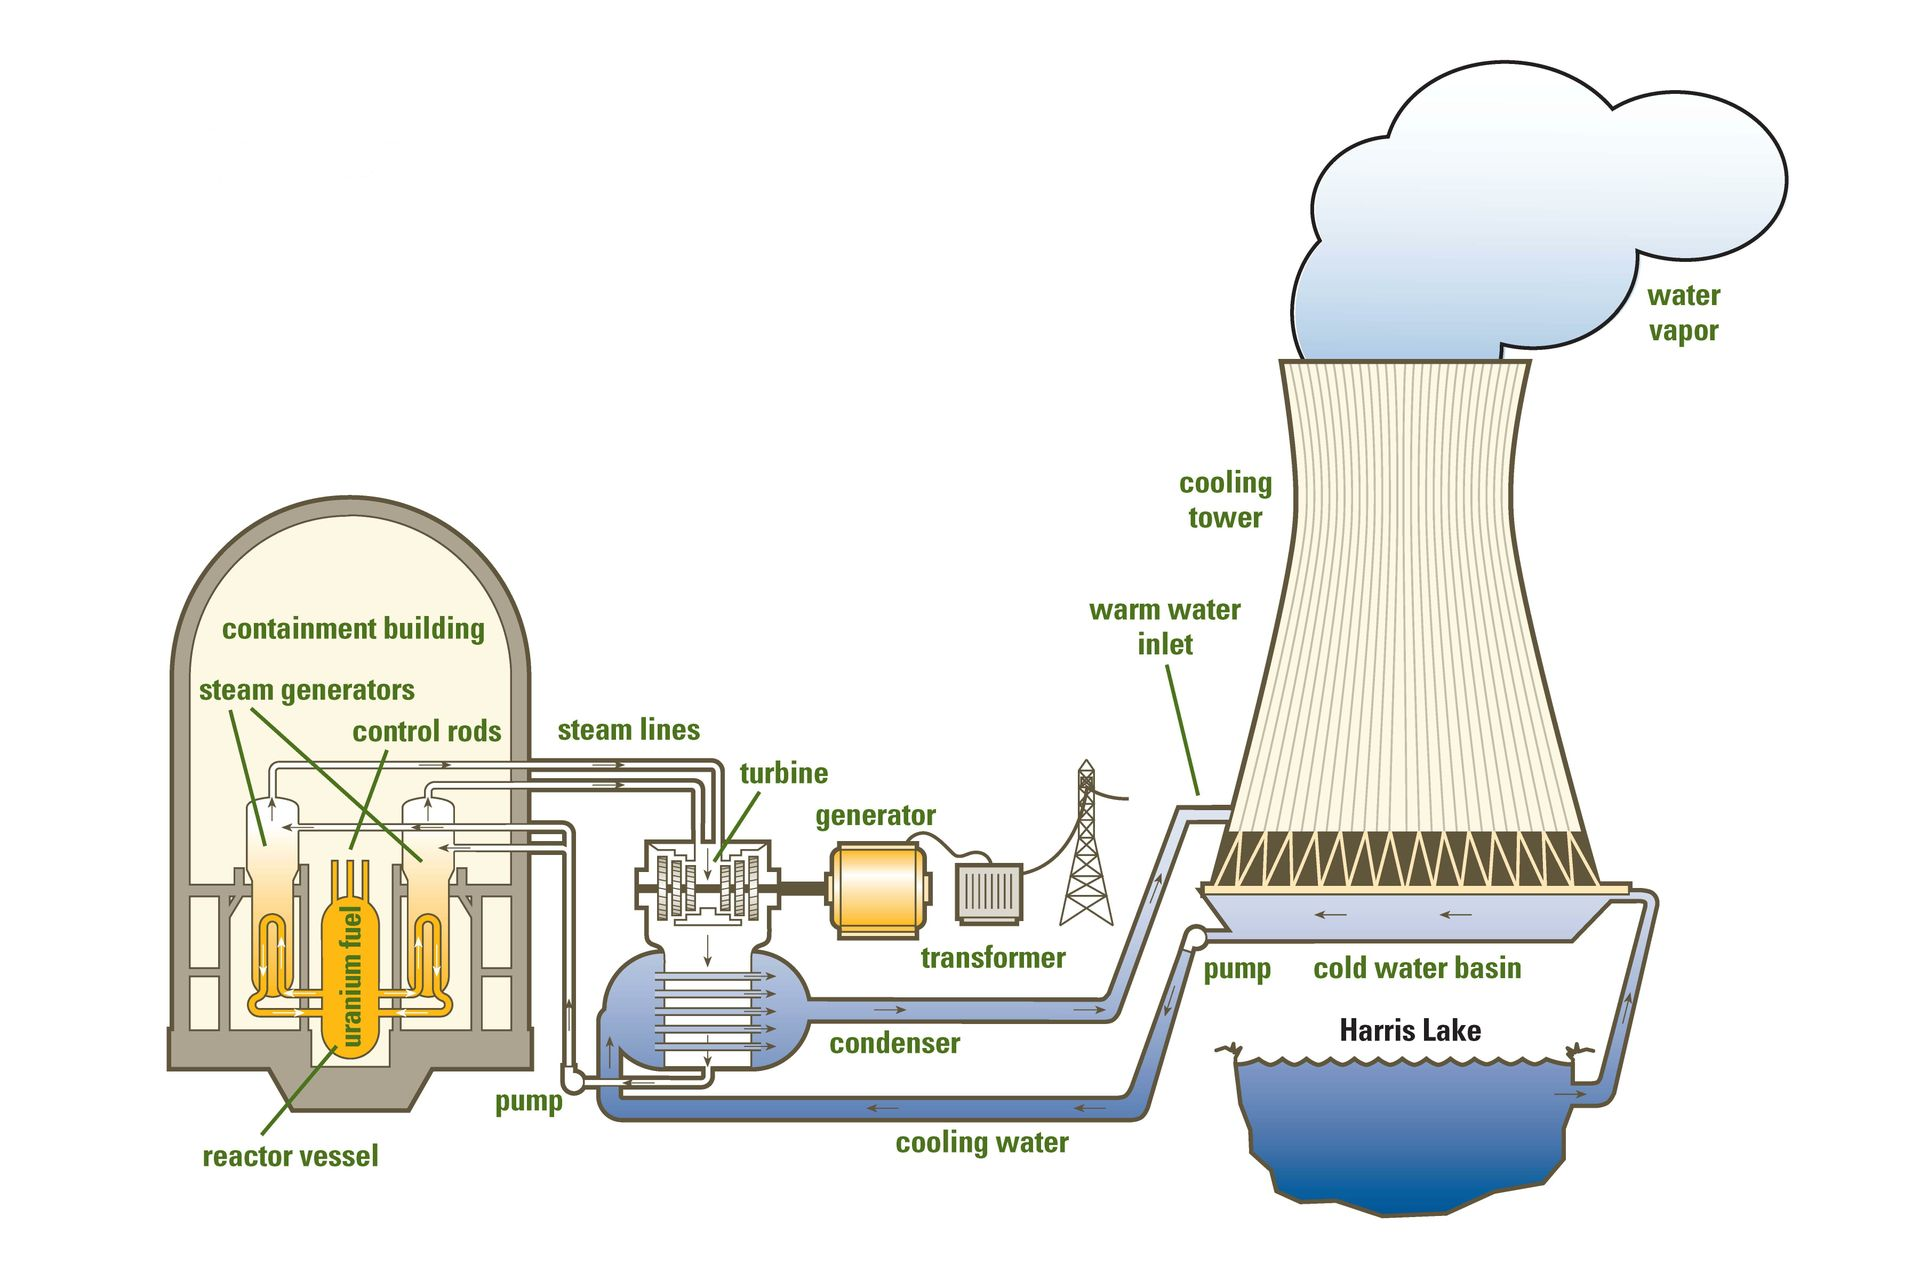 Nuclear Power Plant Drawing At Free For Personal Inside A Diagram 1920x1280 Spotlight Harris Duke Energy